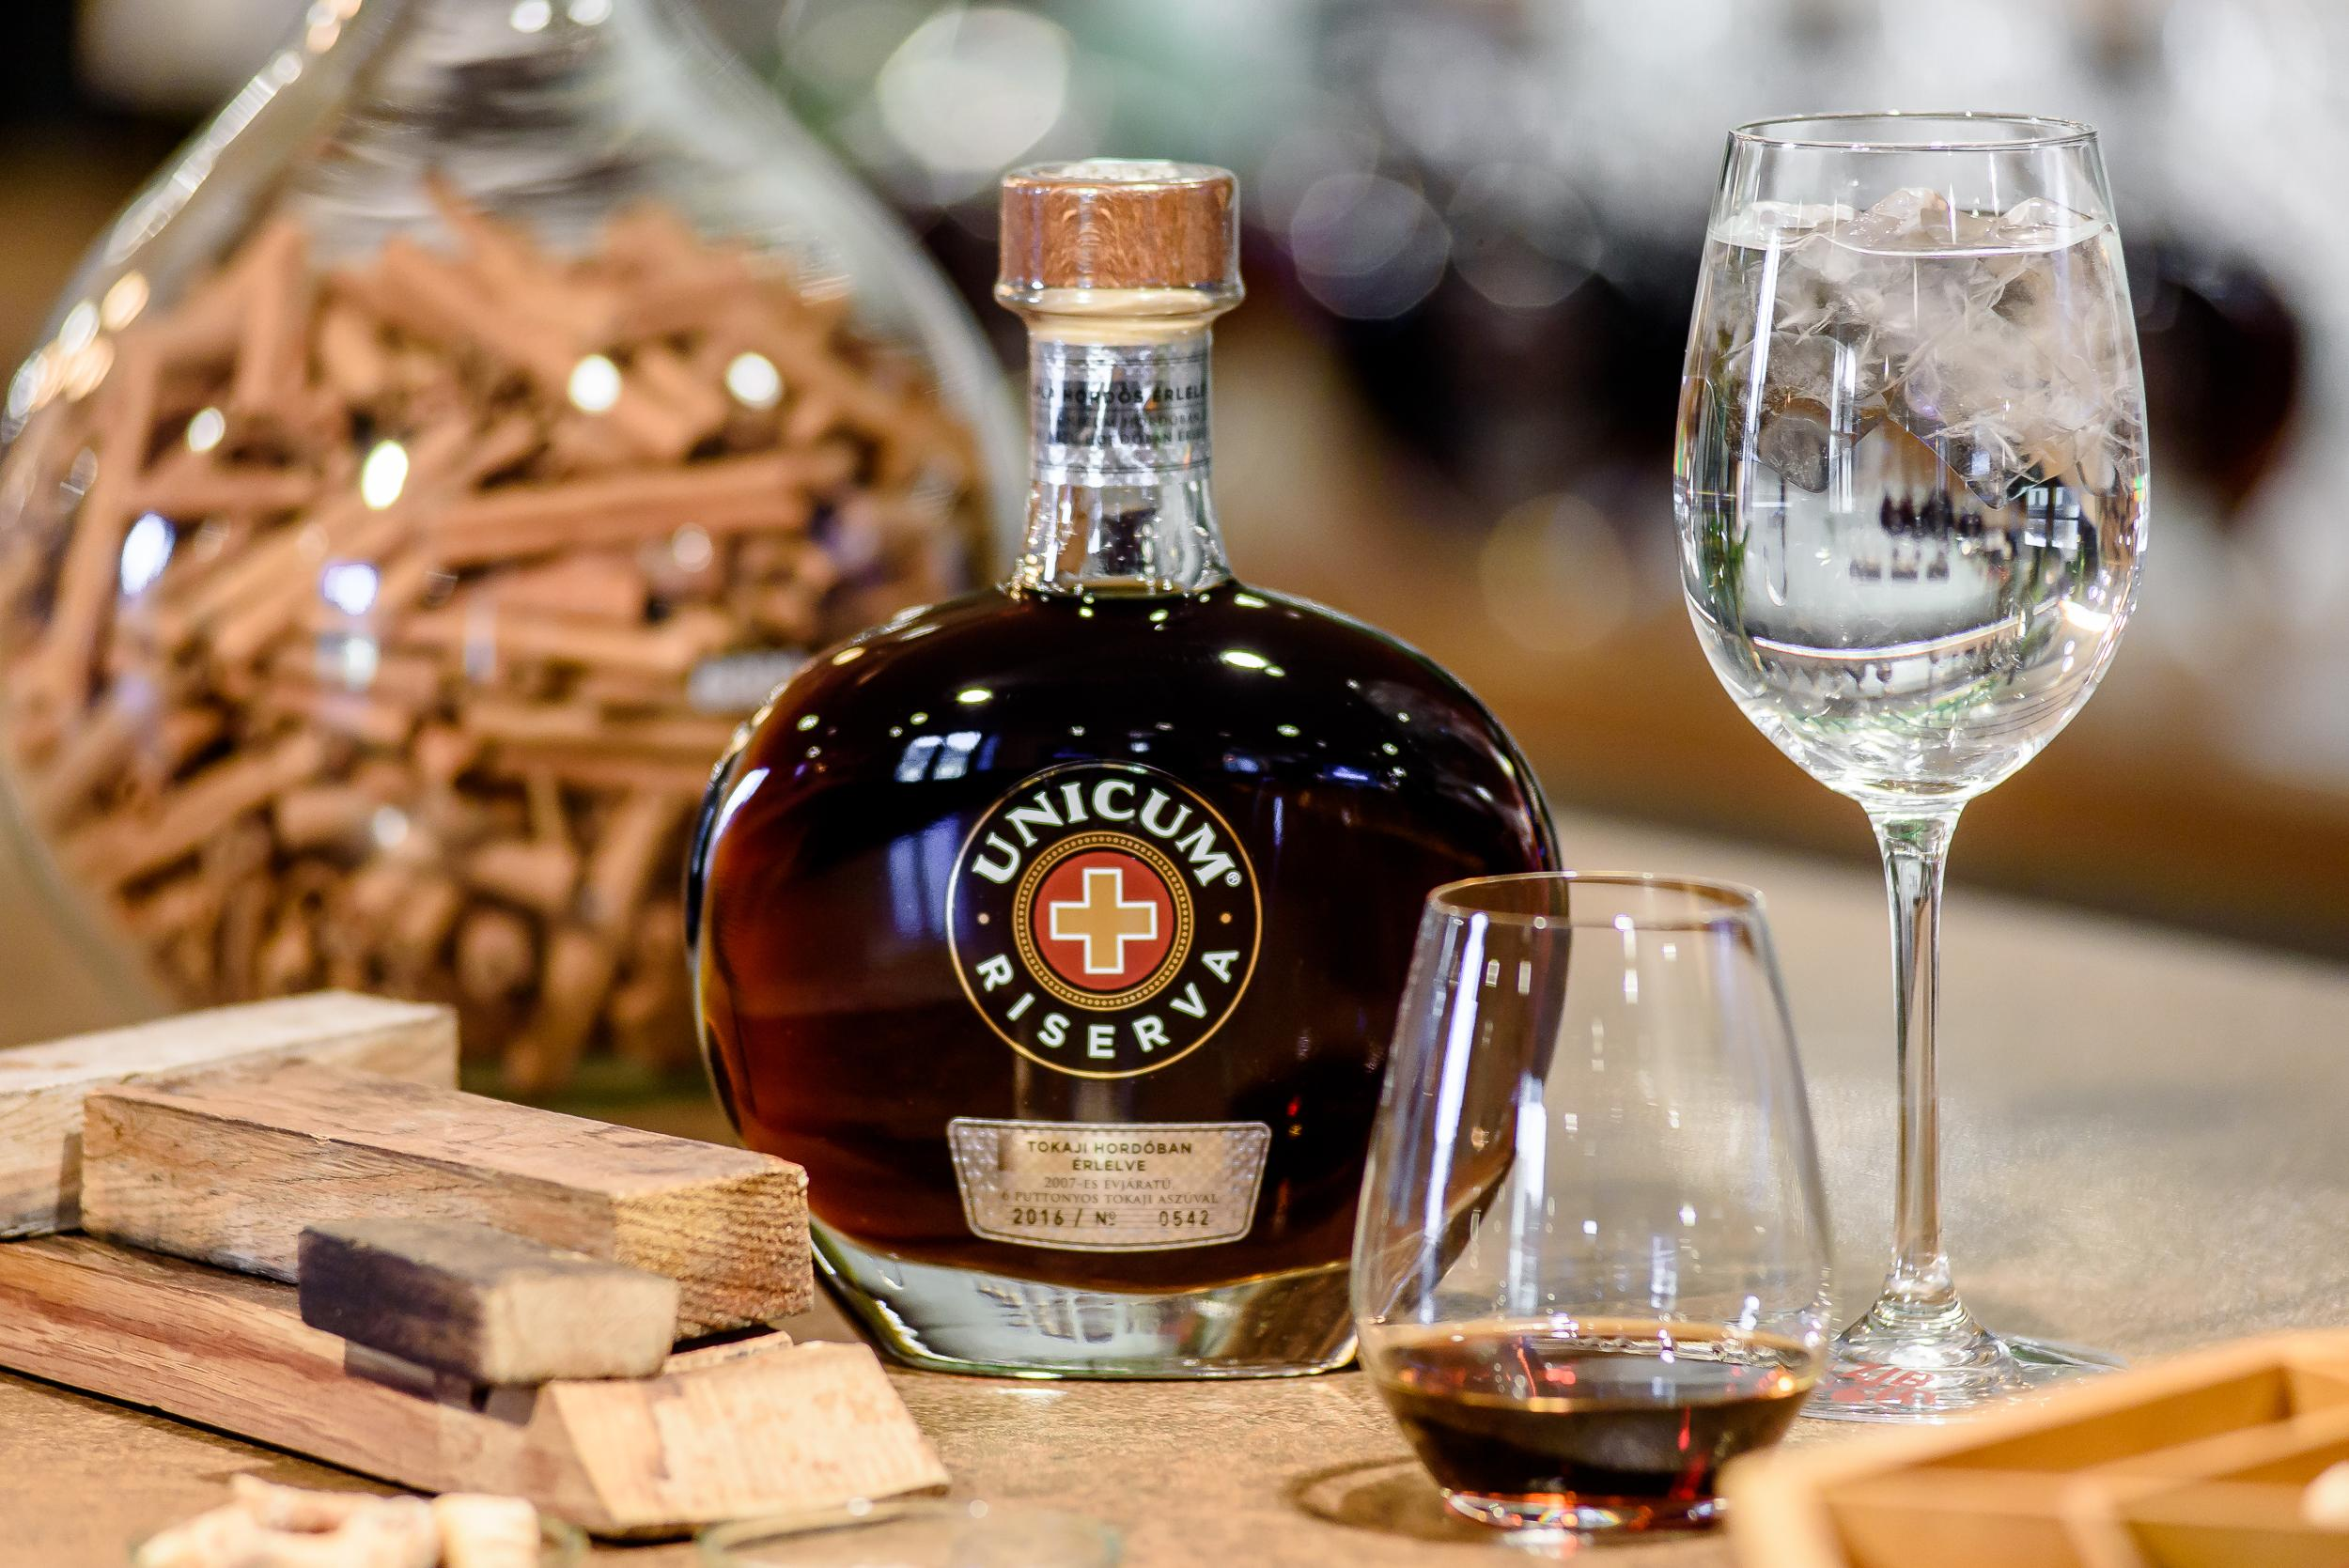 Zwack Family Launch Unicum Riserva